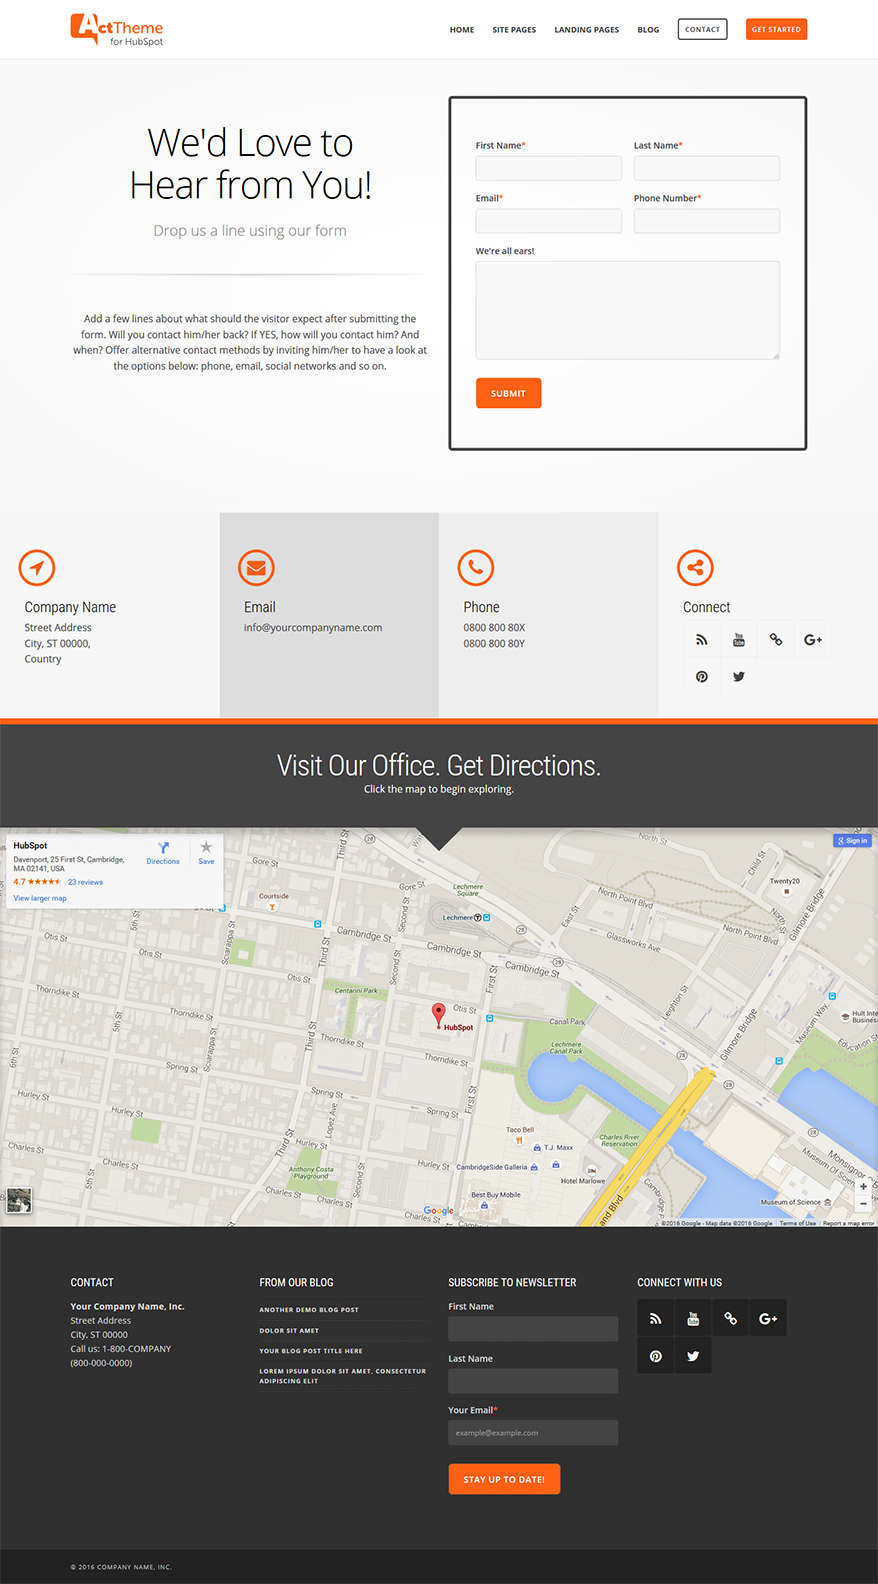 Act Contact I - Home Page Template for HubSpot